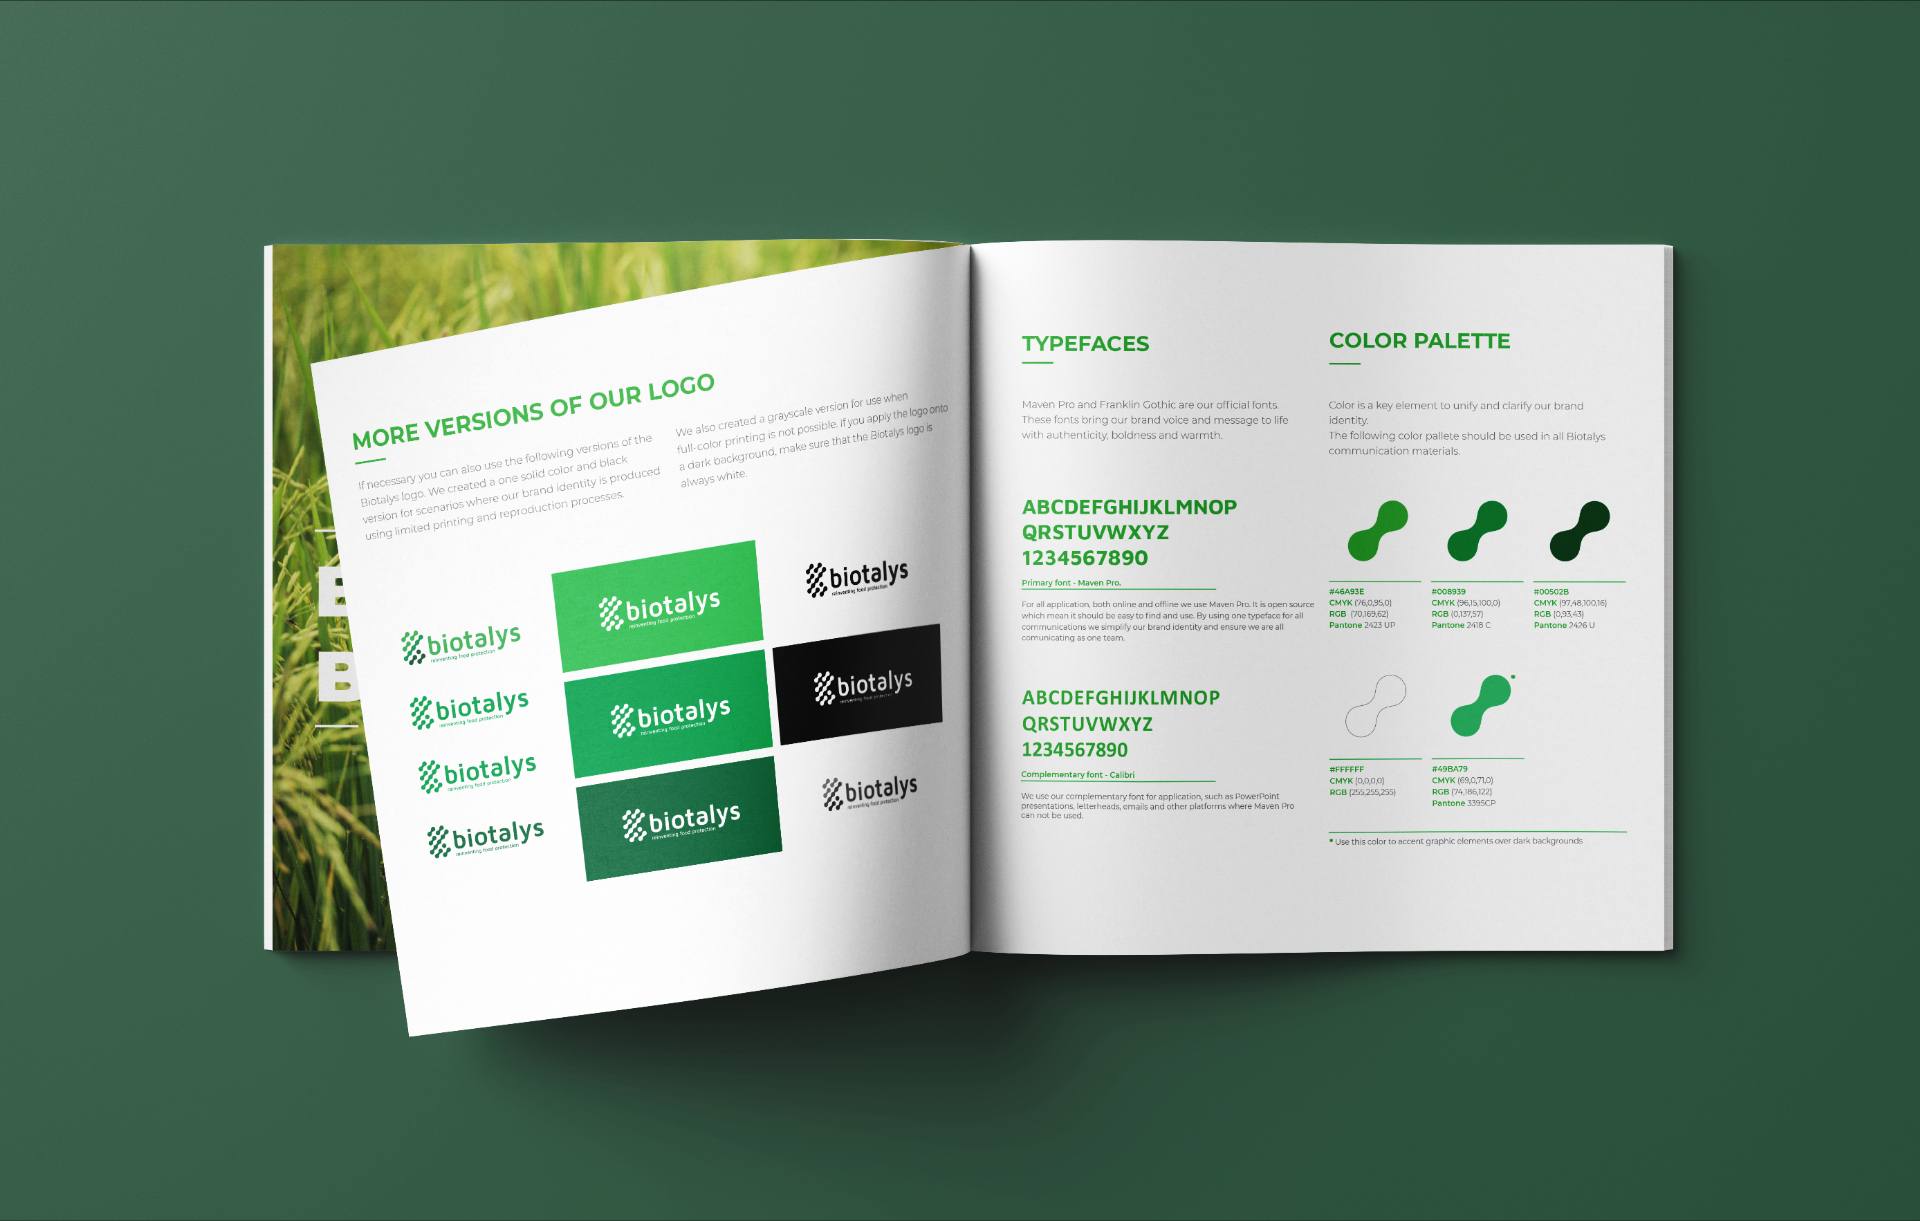 biotalys corporate guidelines logo page